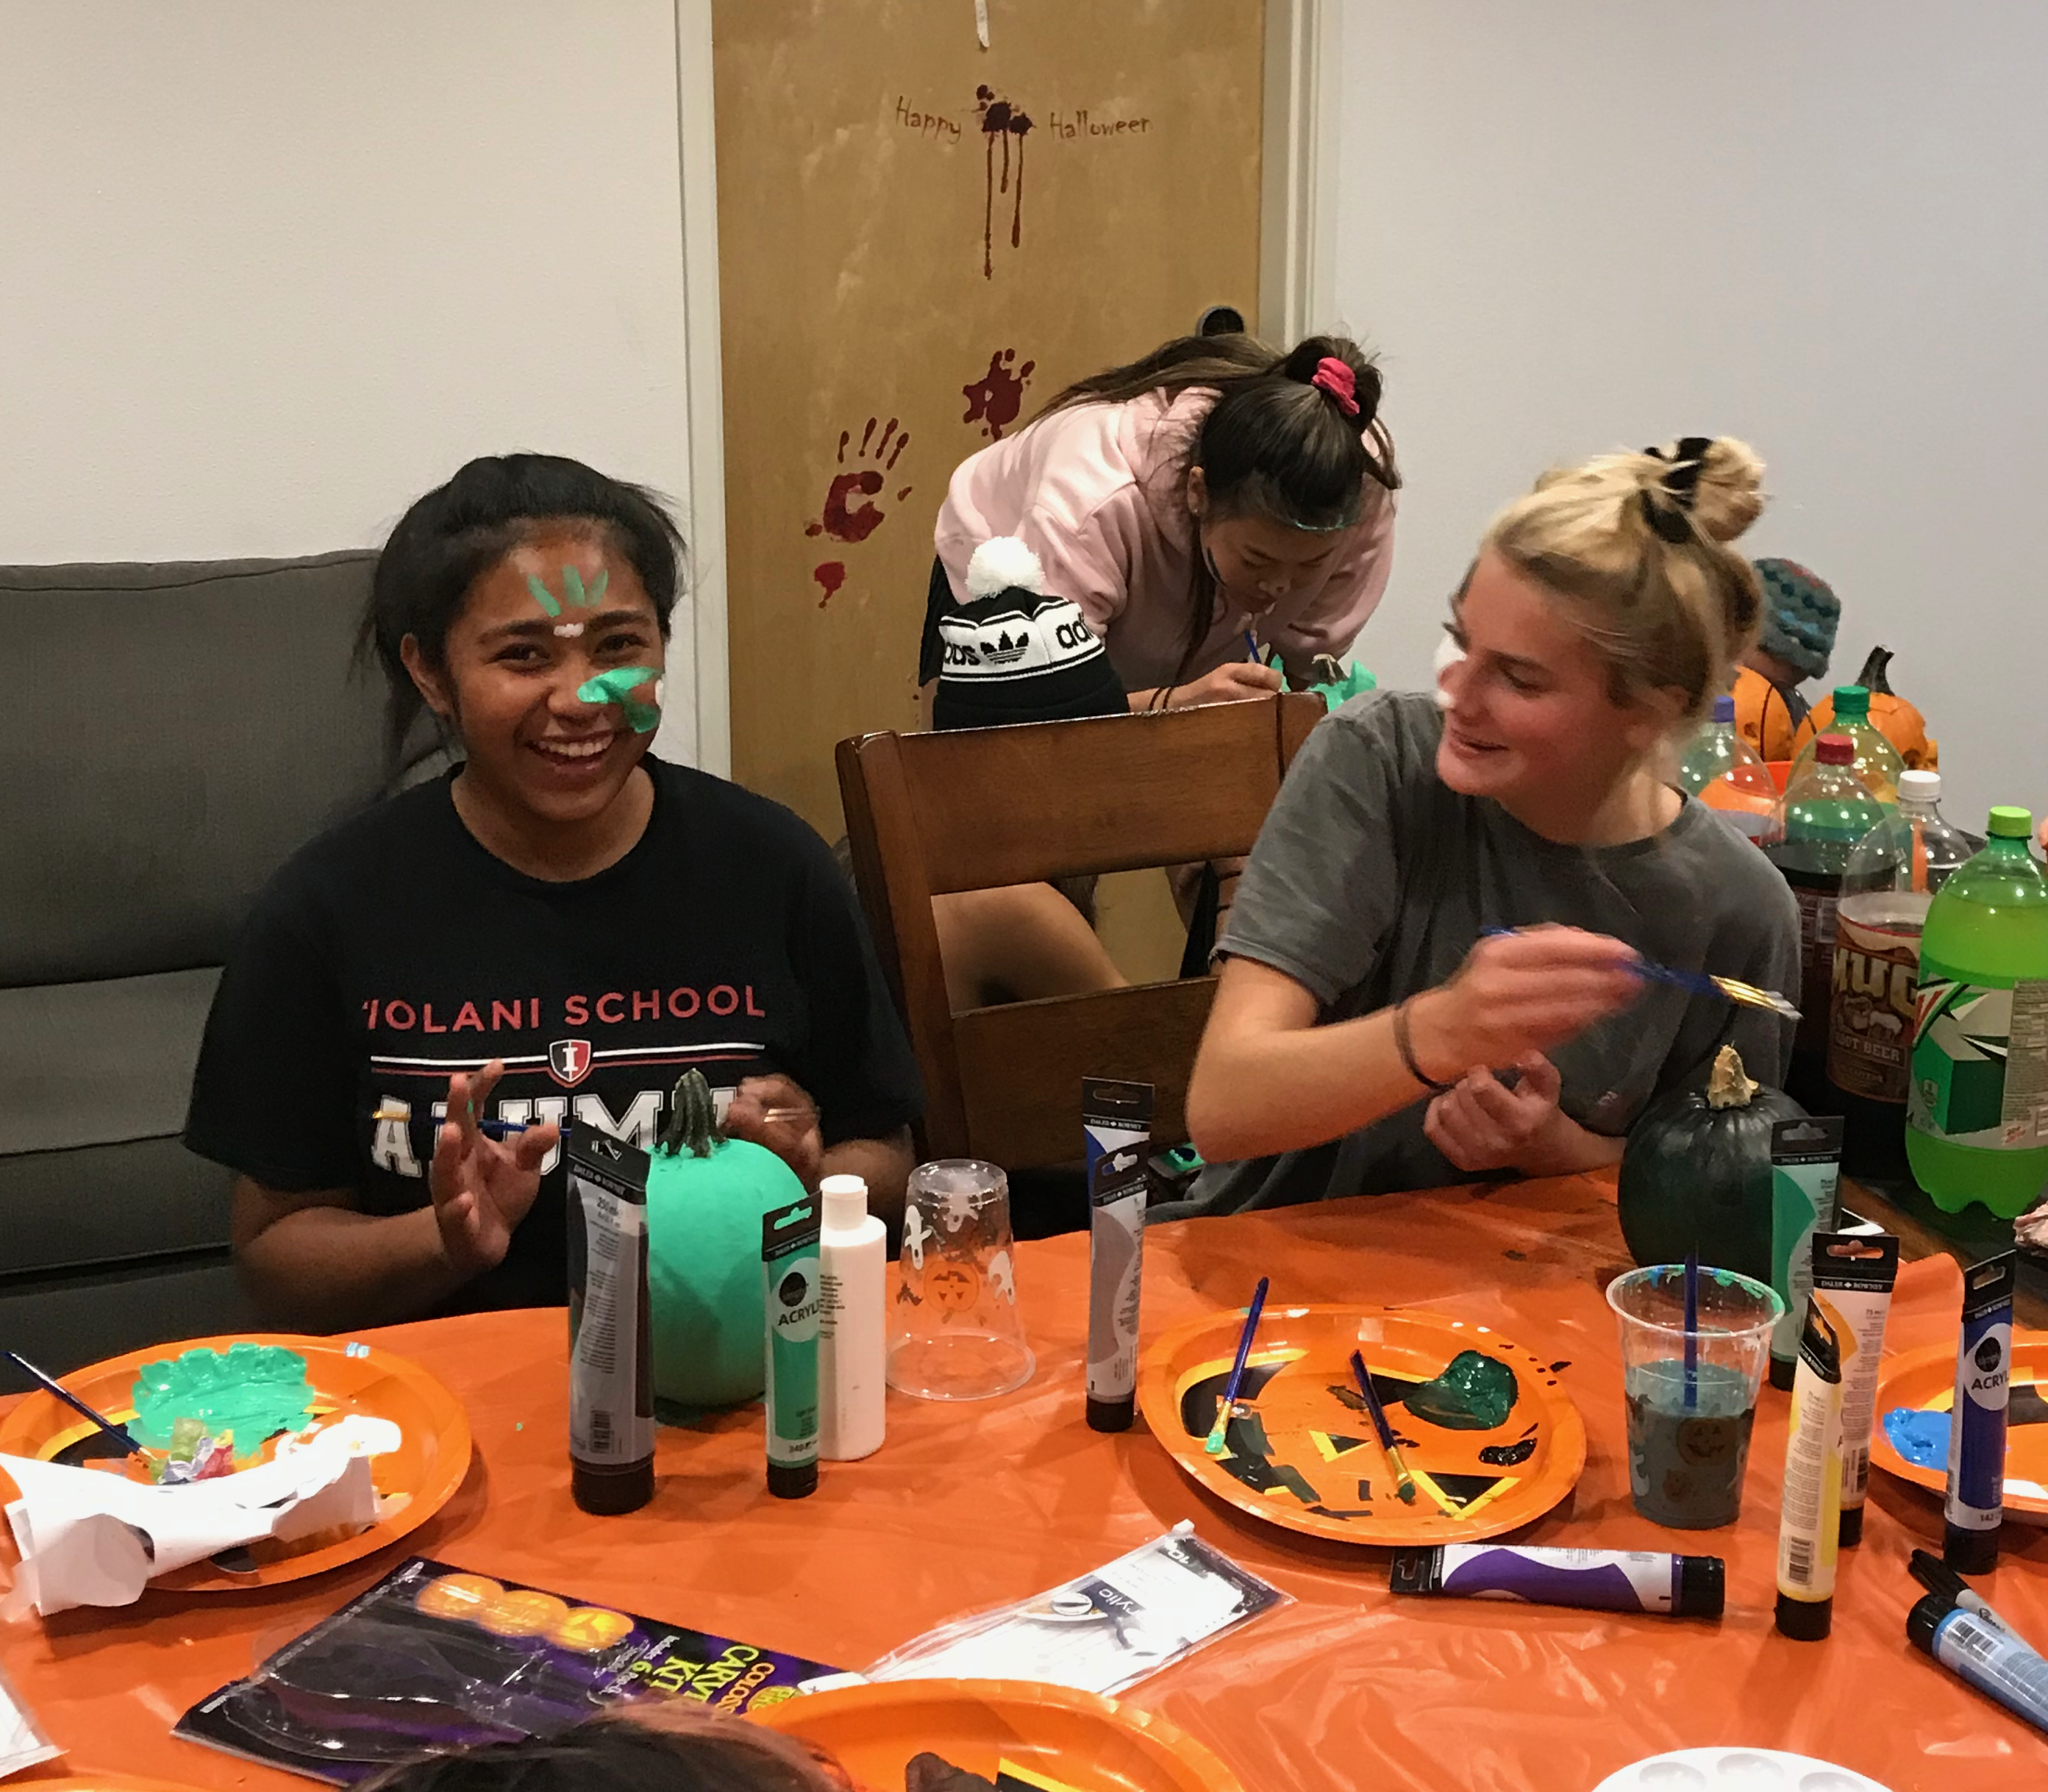 Painting faces as well as pumpkins